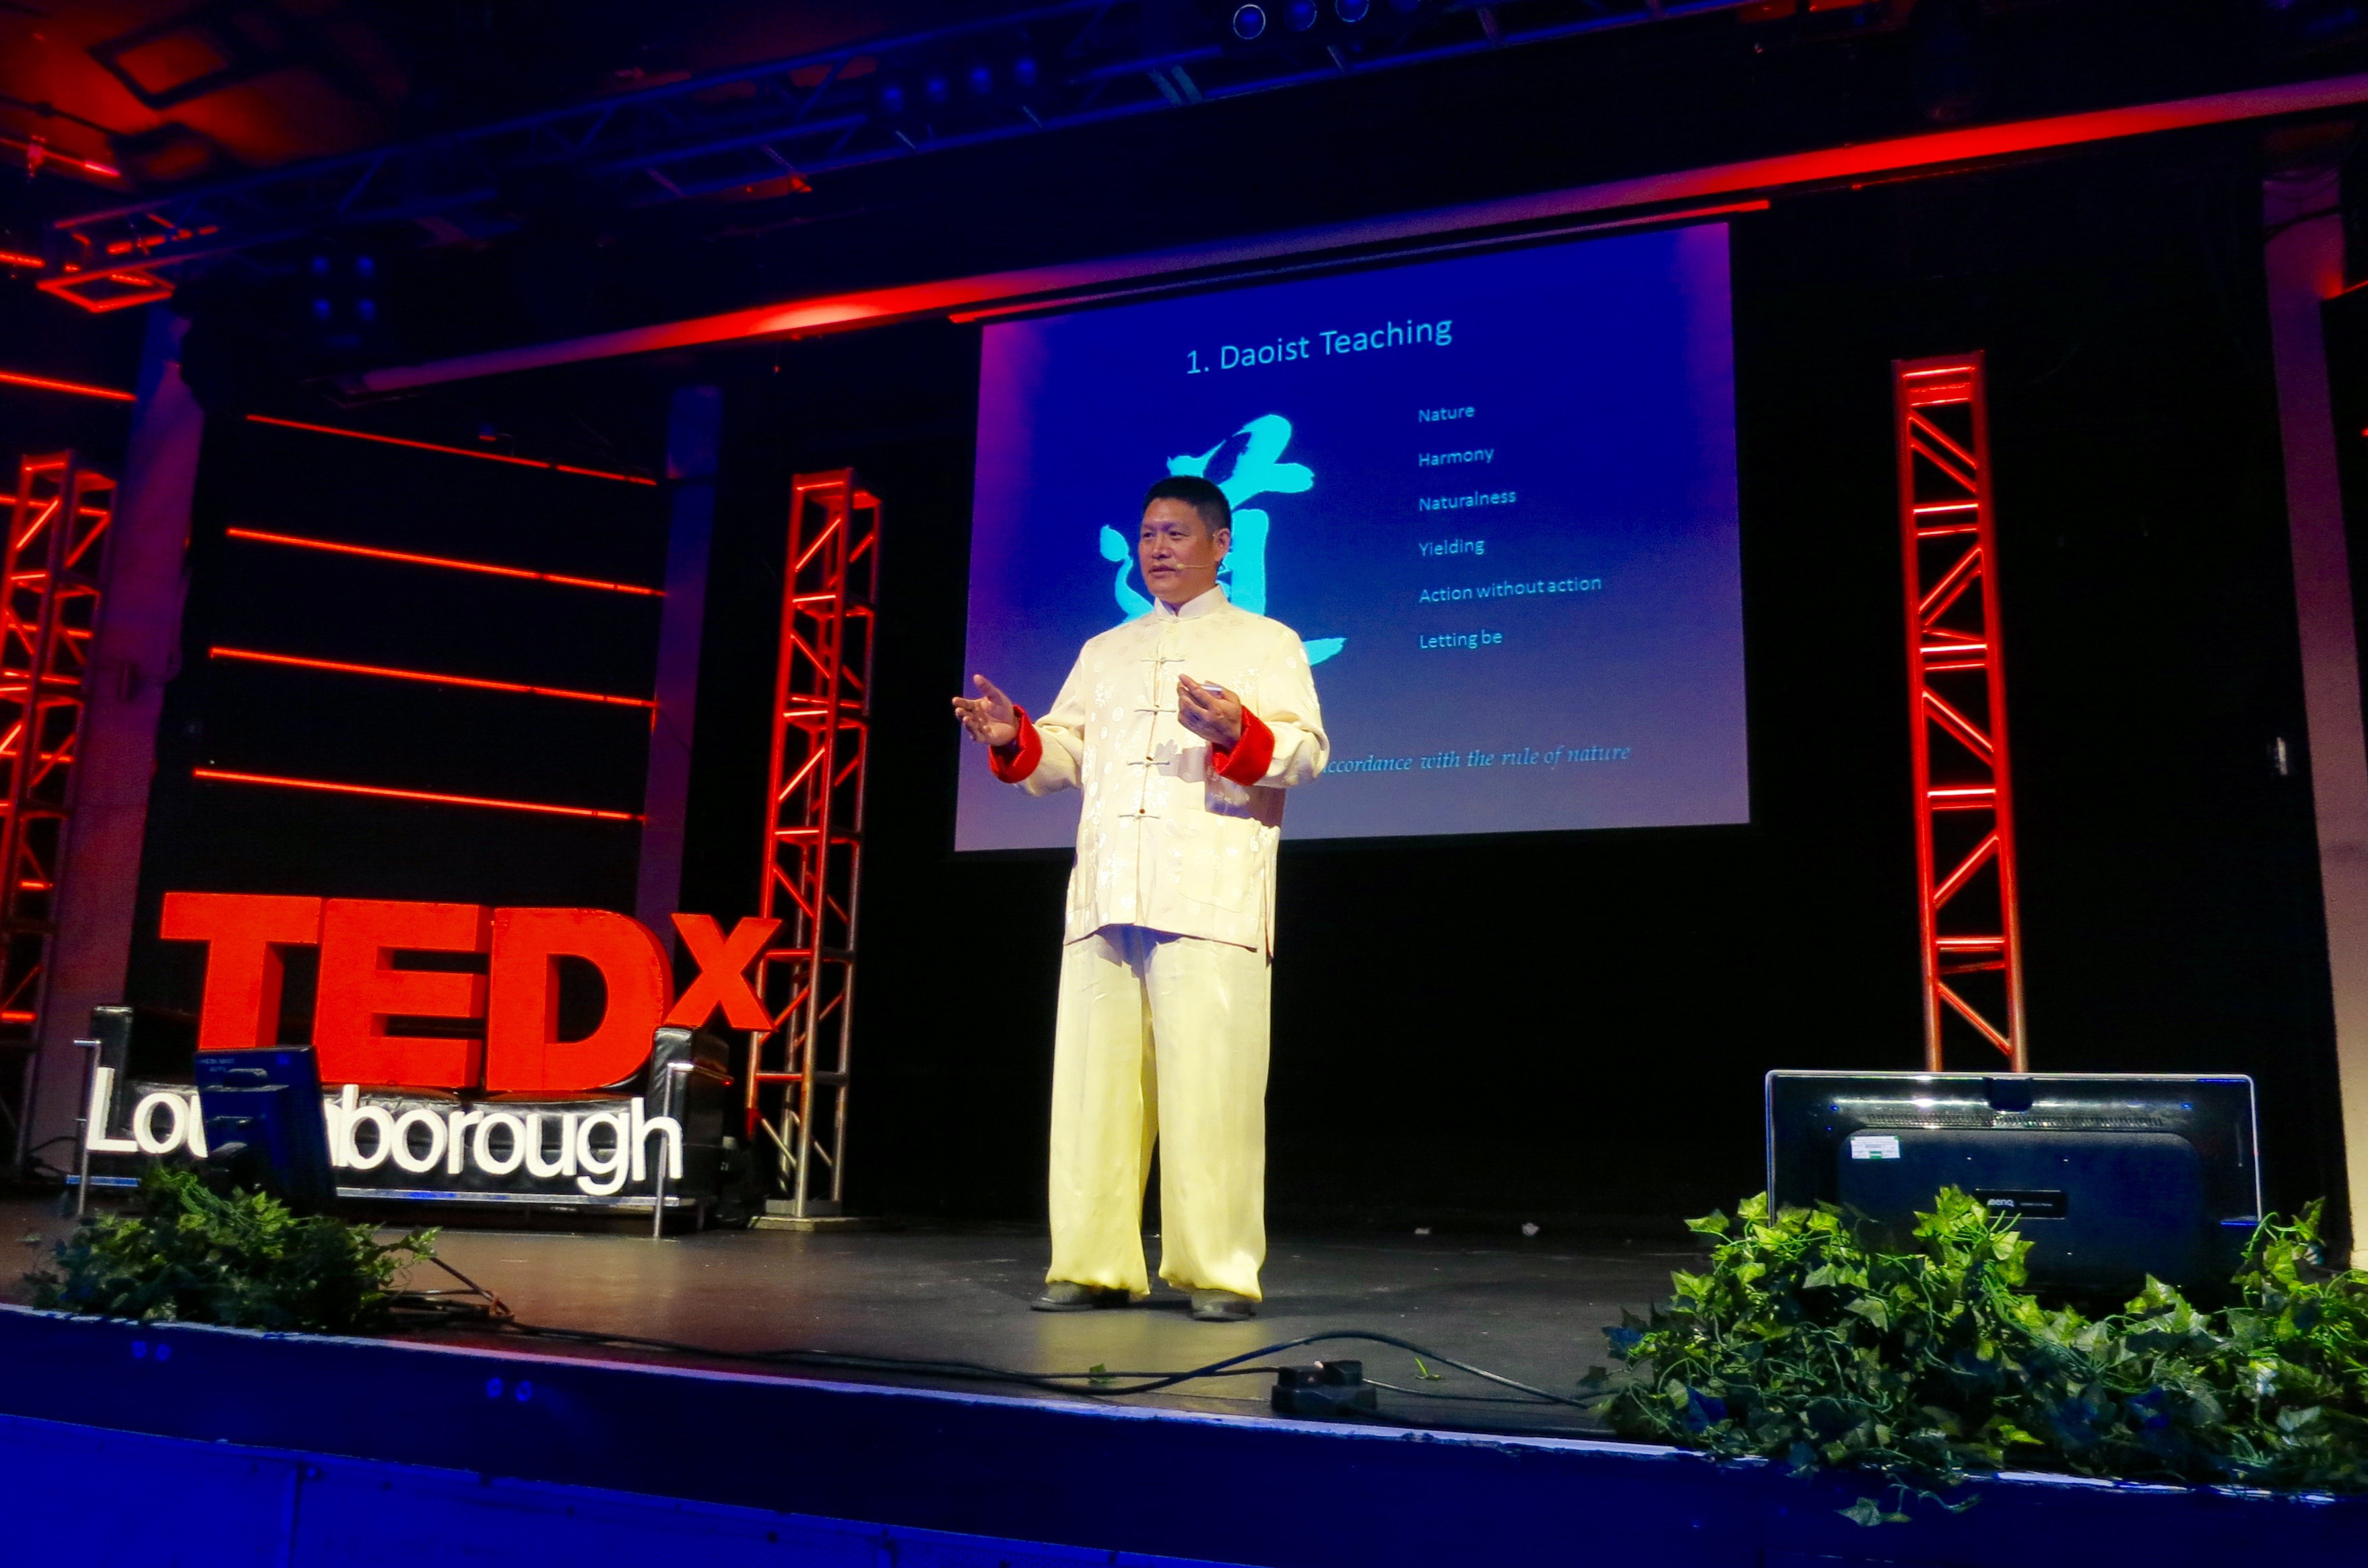 In 2013 Shifu Liu was invited to give a TEDx talk about his life, the importance of tai ji, qi gong and Chinese philosophy